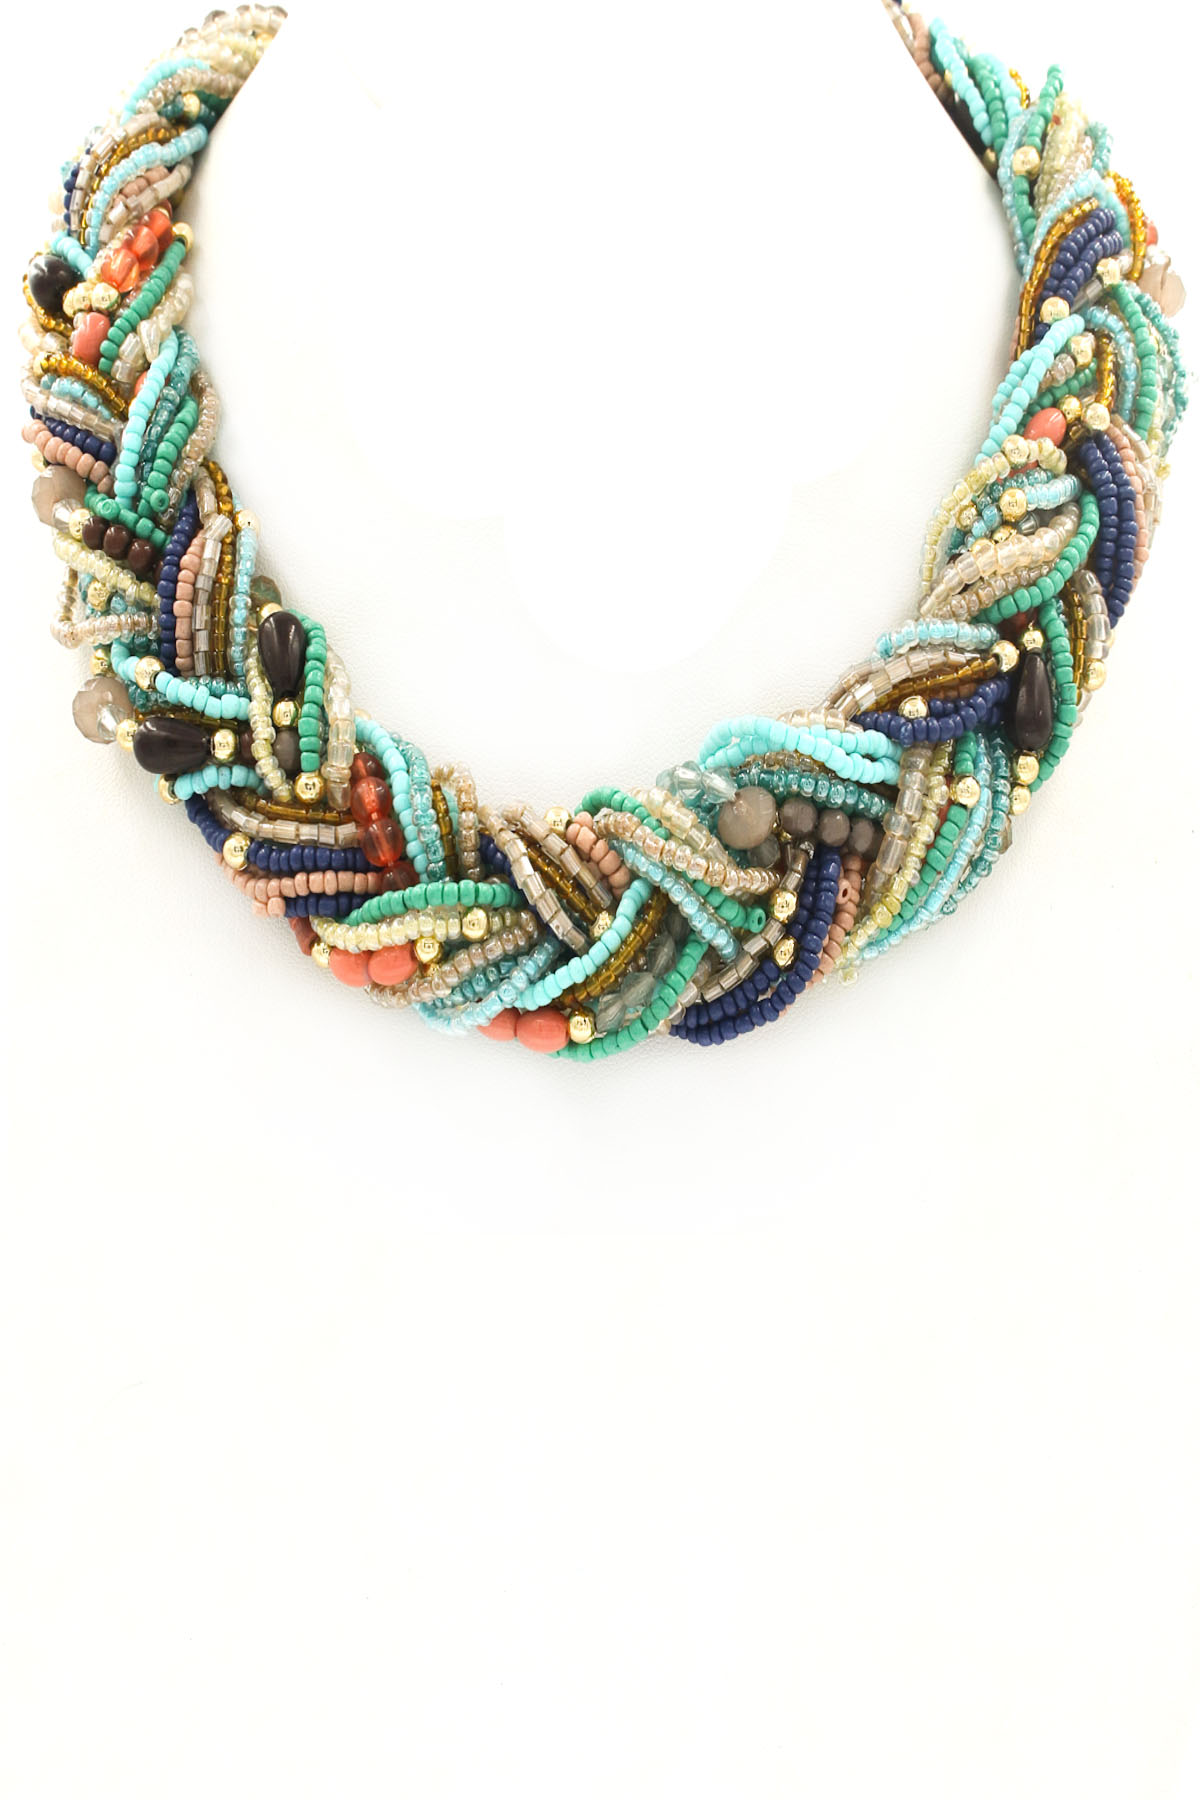 Braided Seed Bead Necklace - Necklaces